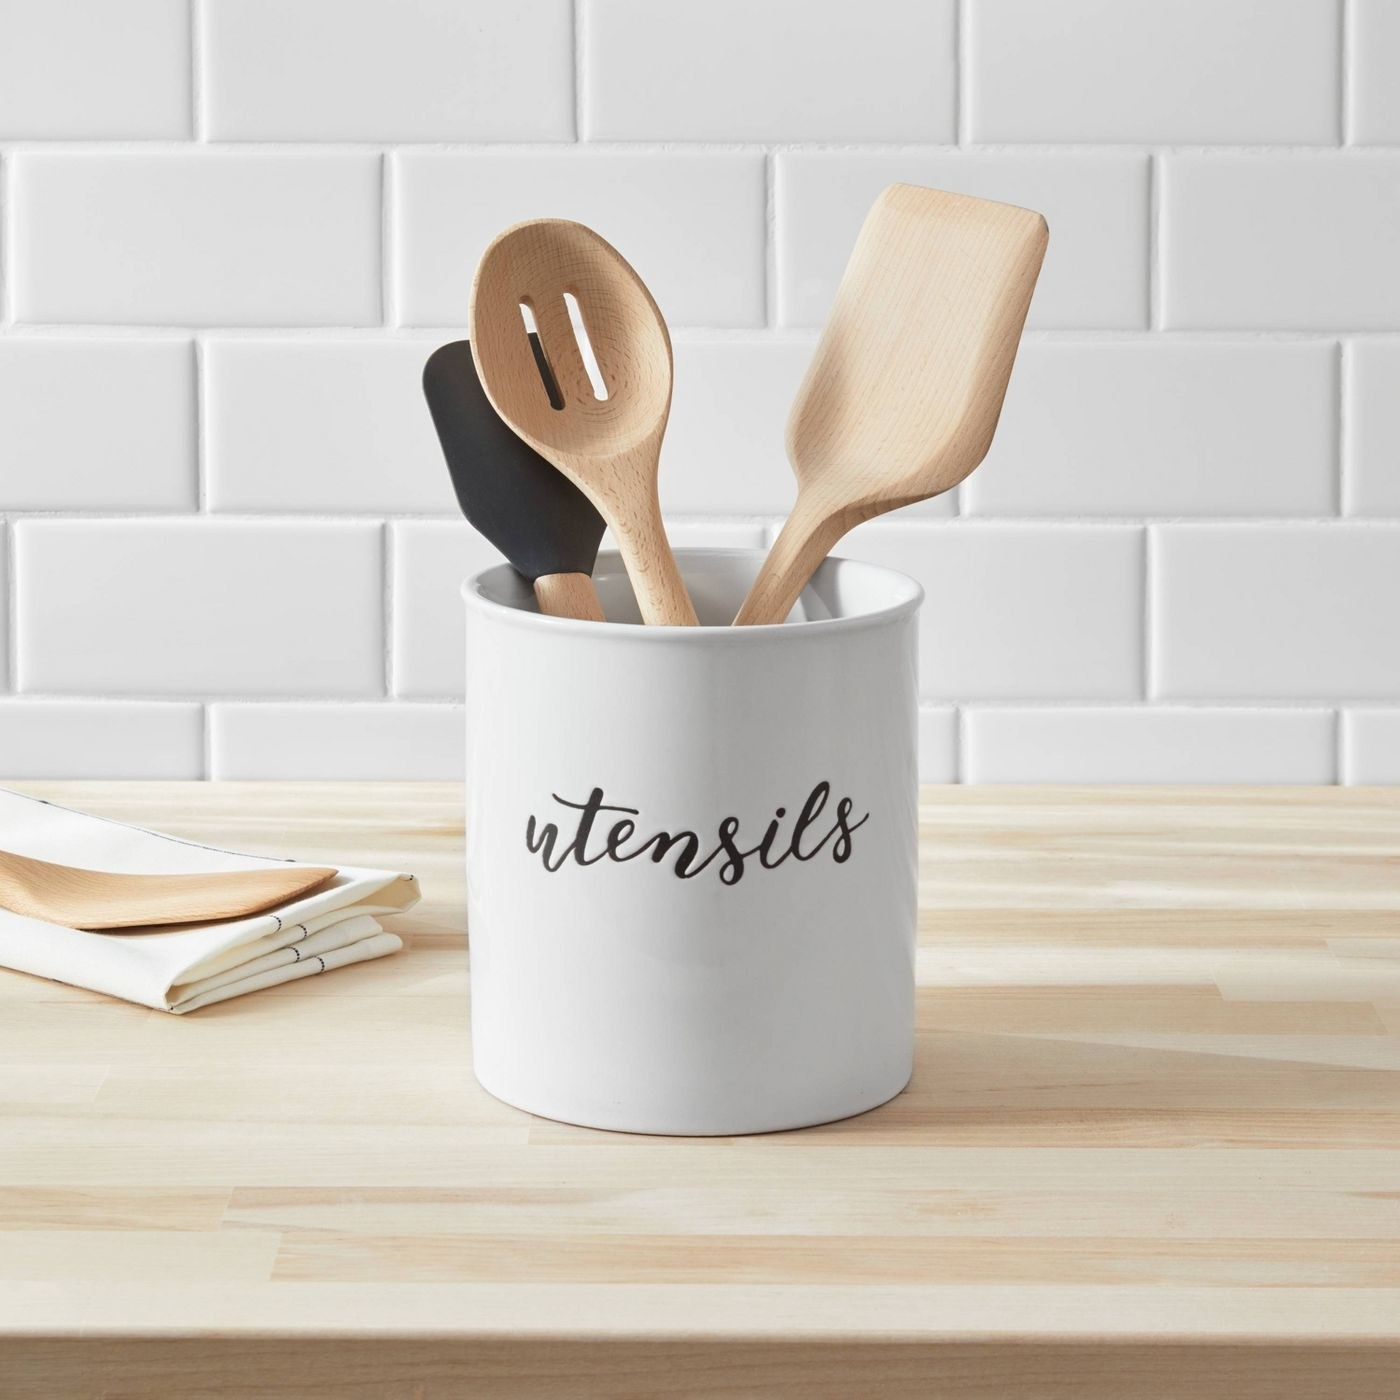 A black and white utensil cup